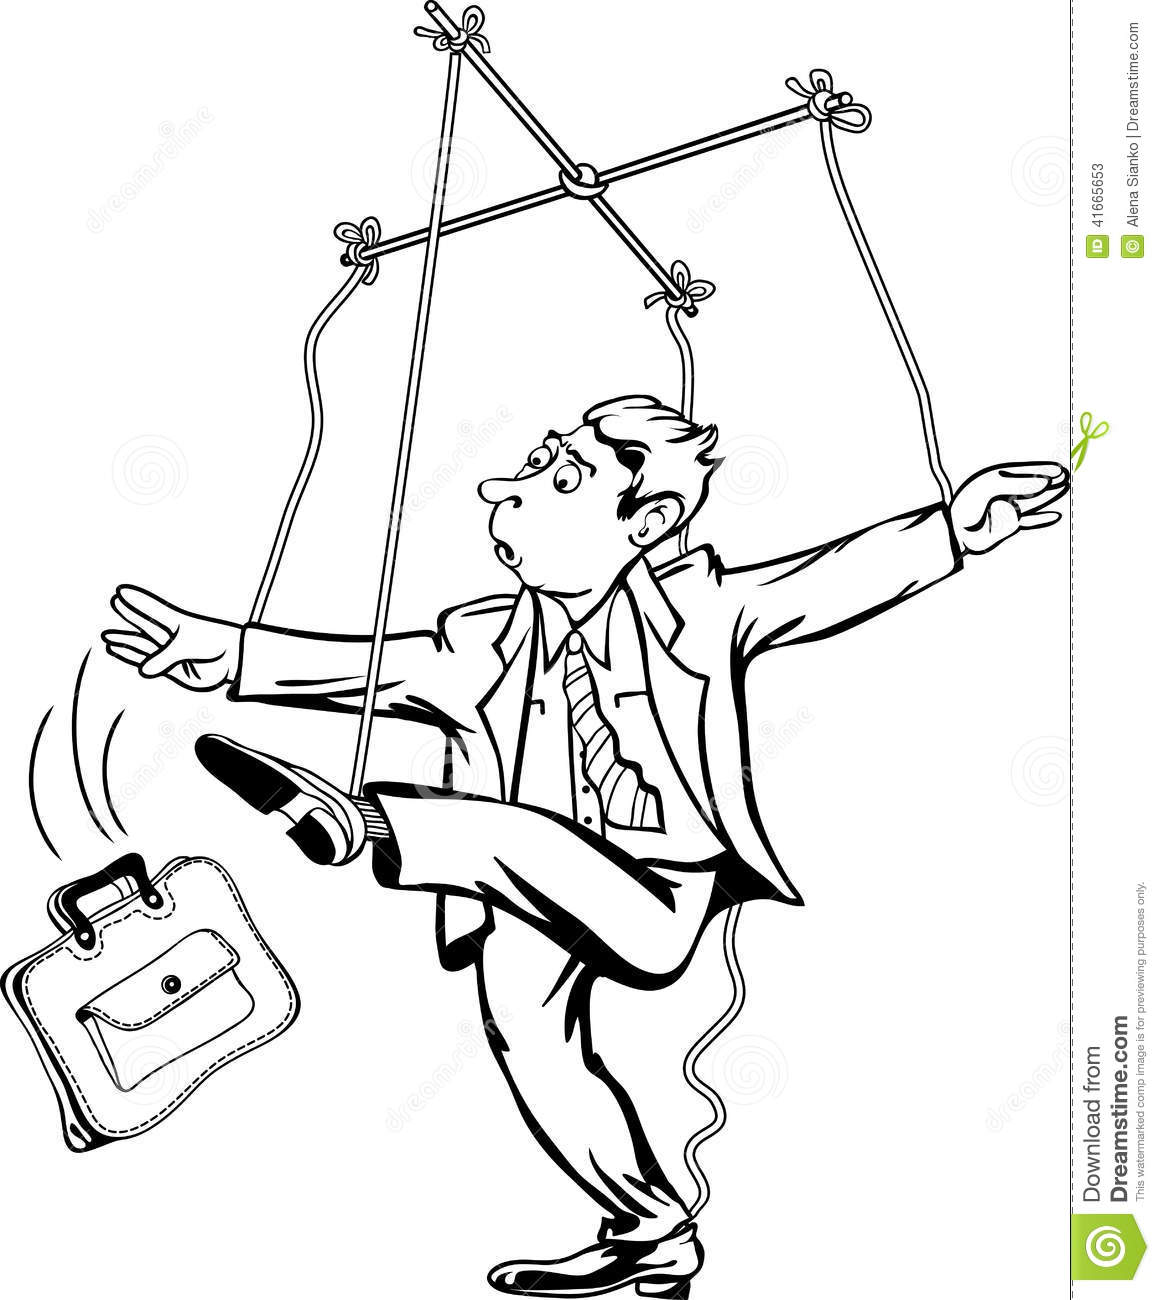 puppet coloring pages - man pulling the strings worker as a marionette puppet